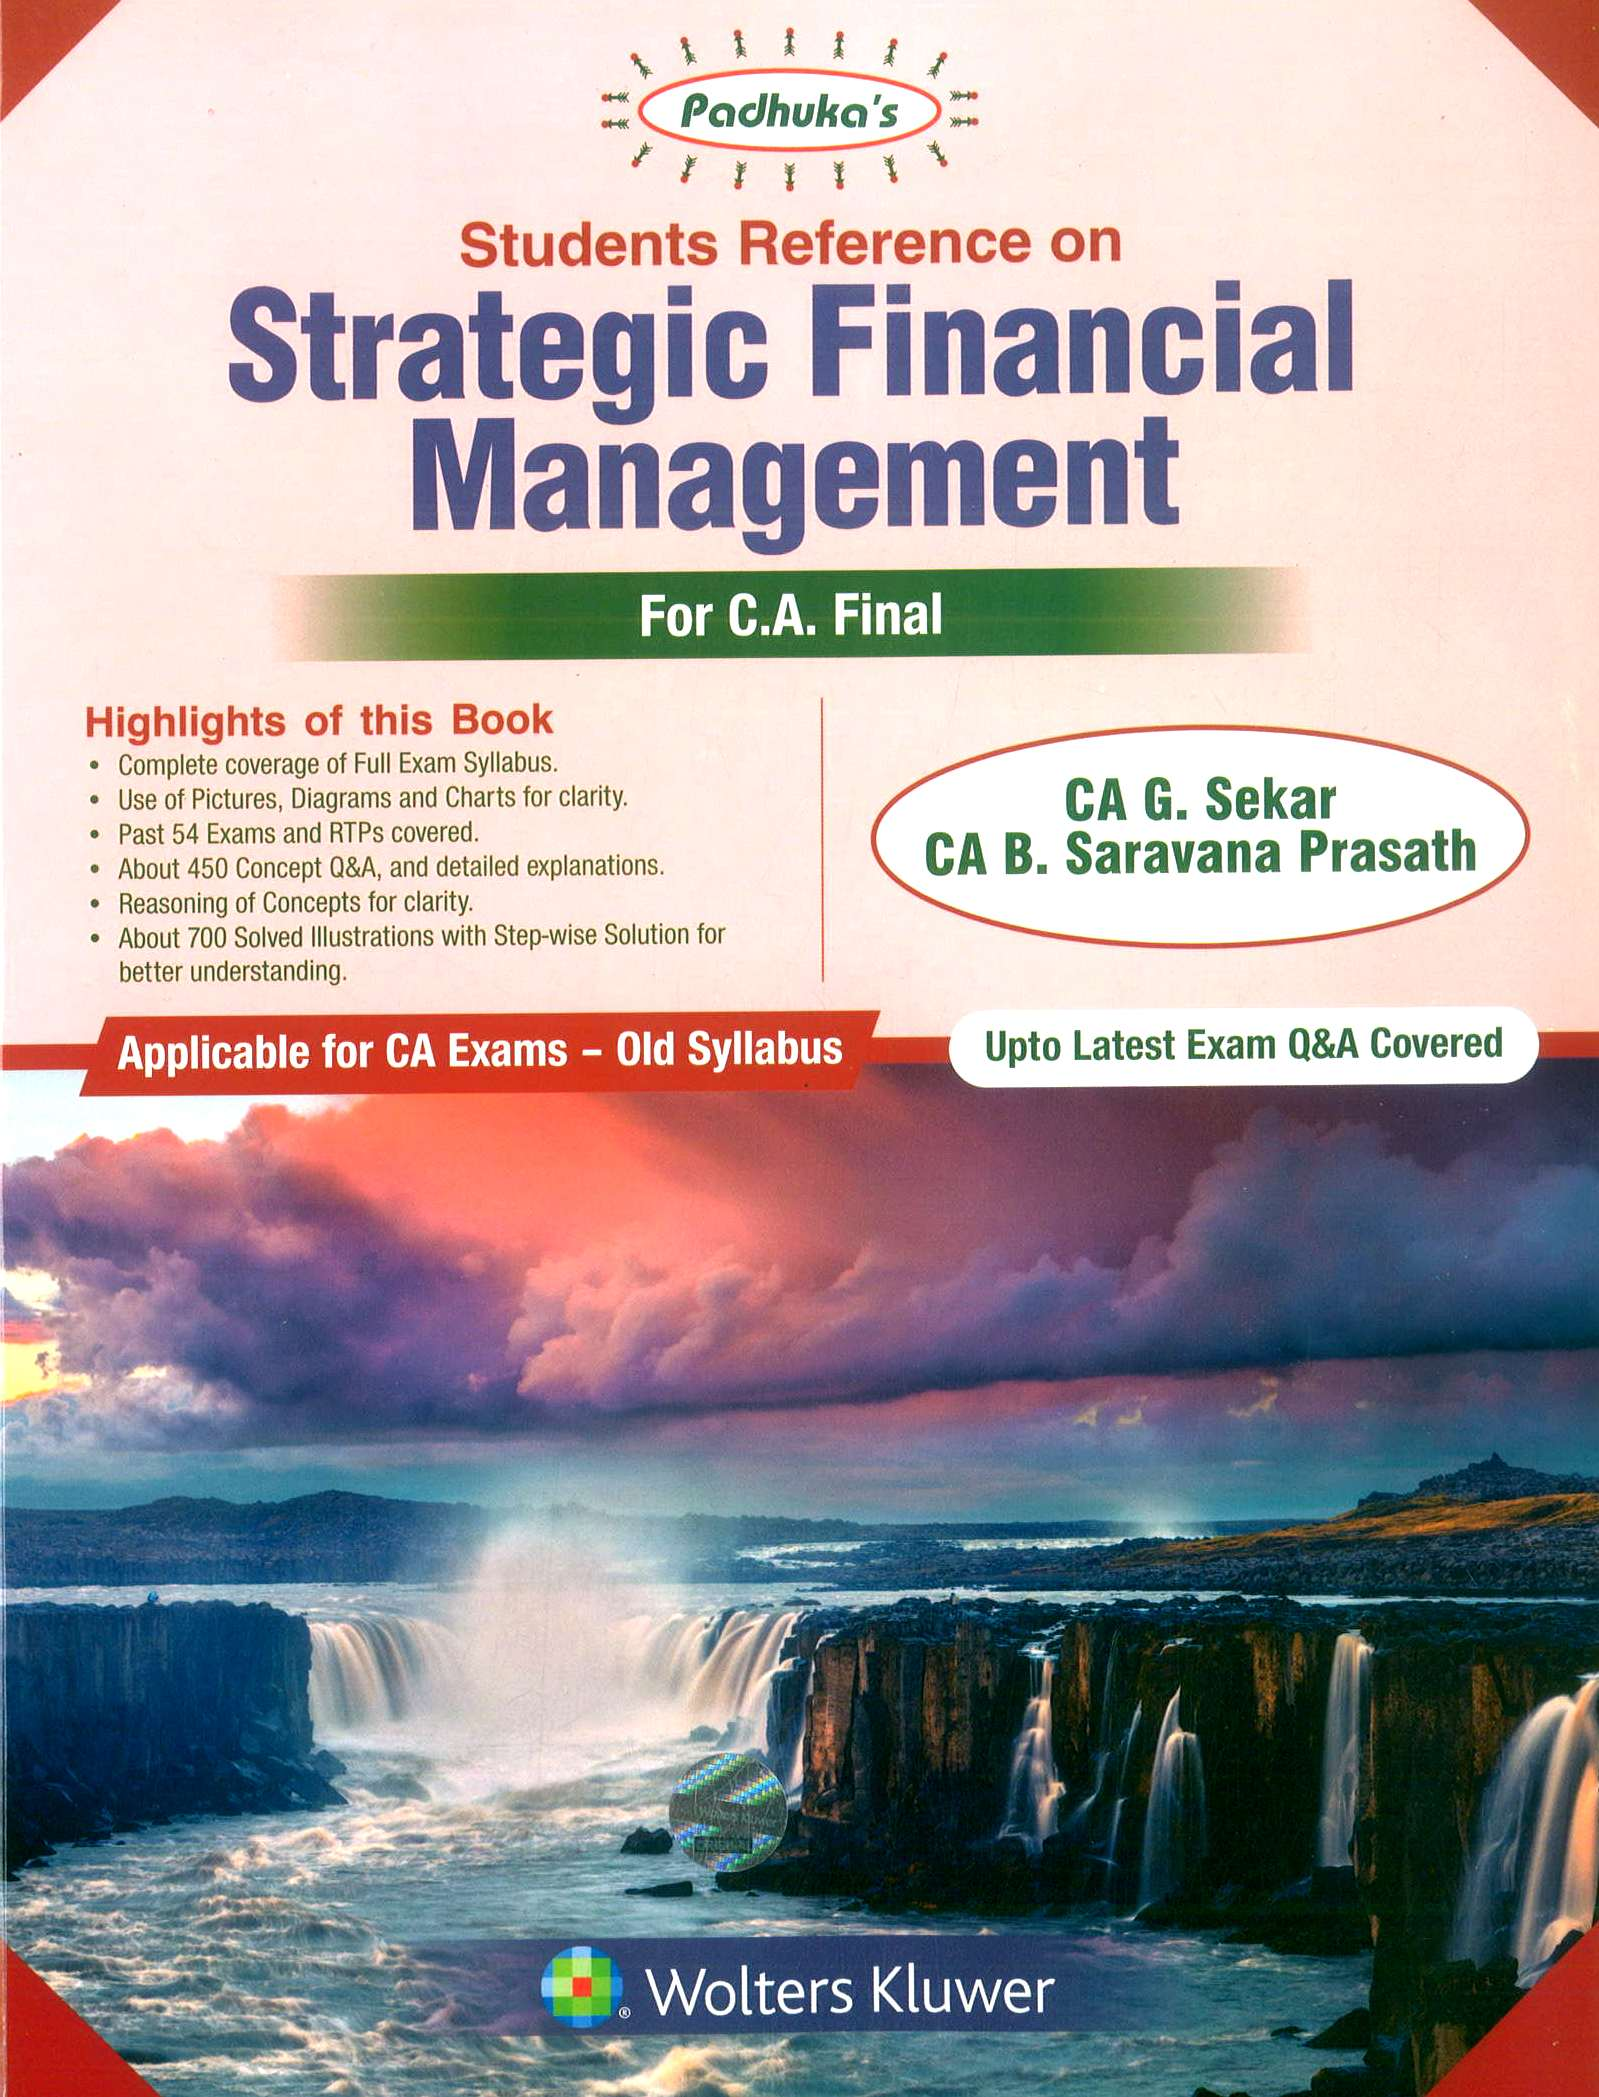 Wolters Kluwer Padhuka Students' Reference on Strategic Financial Management for CA Final May 2019 exam by CA G. Sekar and CA B. Saravana Prasath (Wolters Kluwer Publishing) 11th Dec Edition 2018